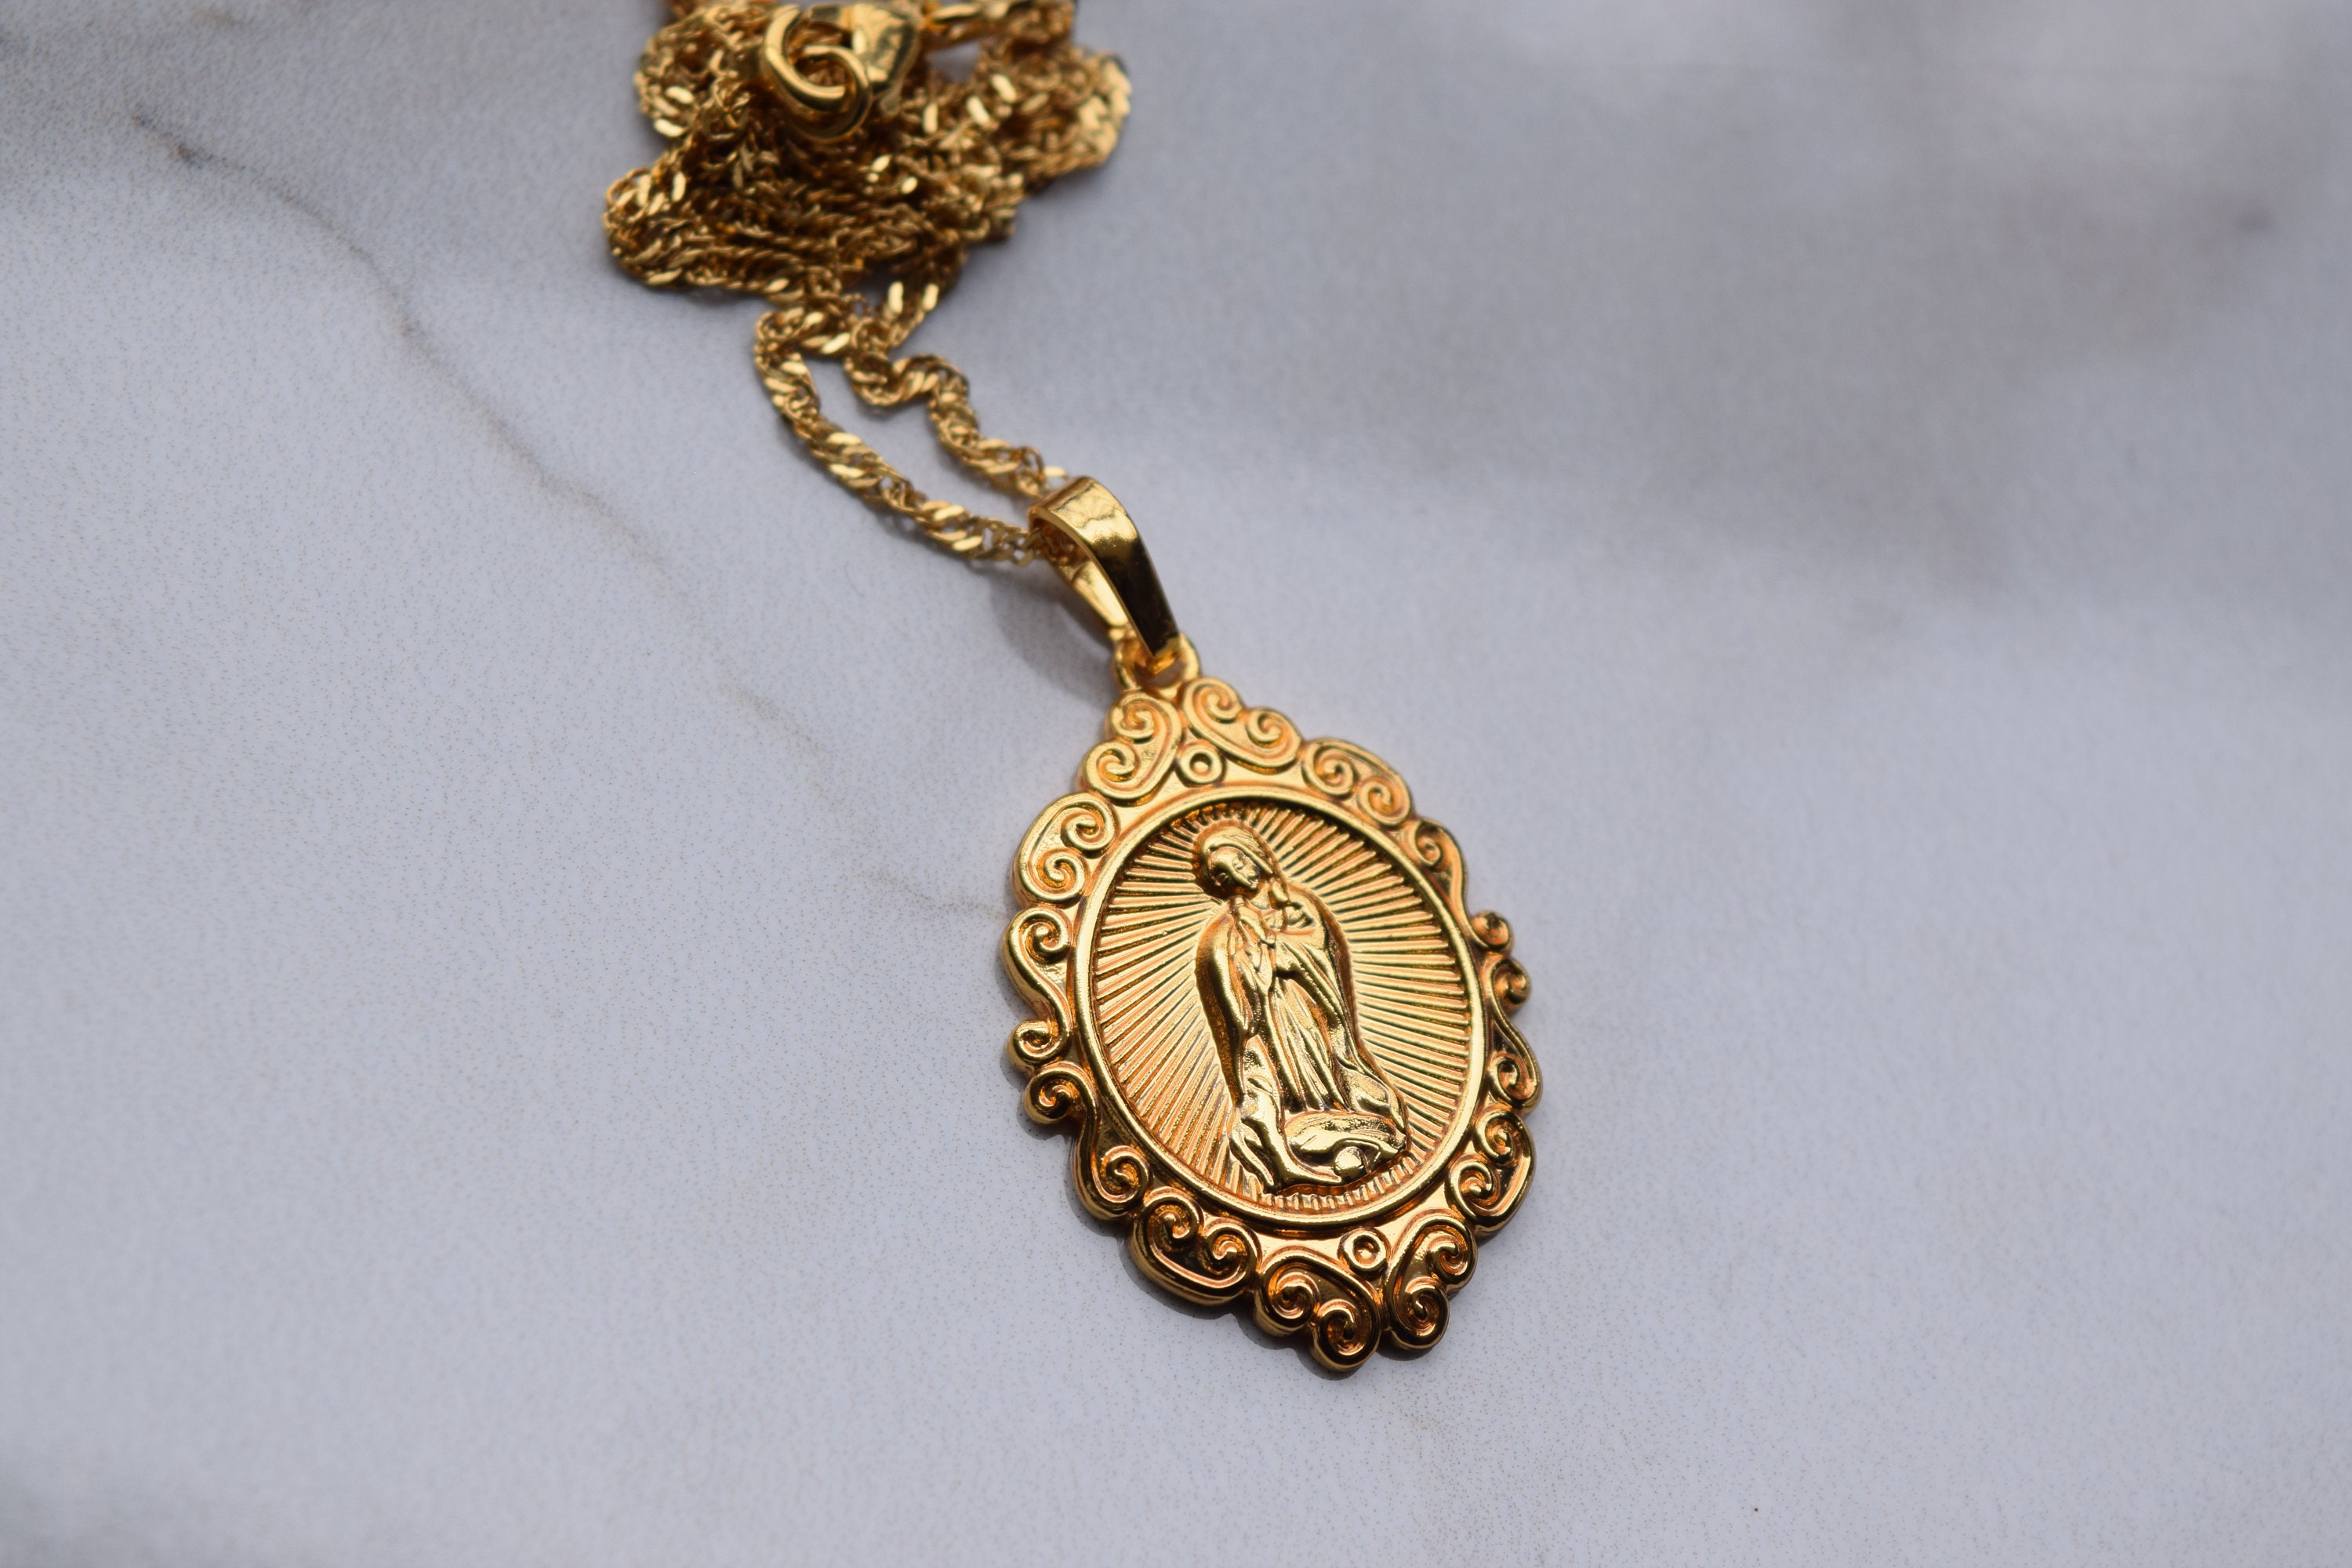 passion hail cadena medalla communion mary medium necklace medal products grande con gold maria pendant ibiza chain with first collections ave plated otoi